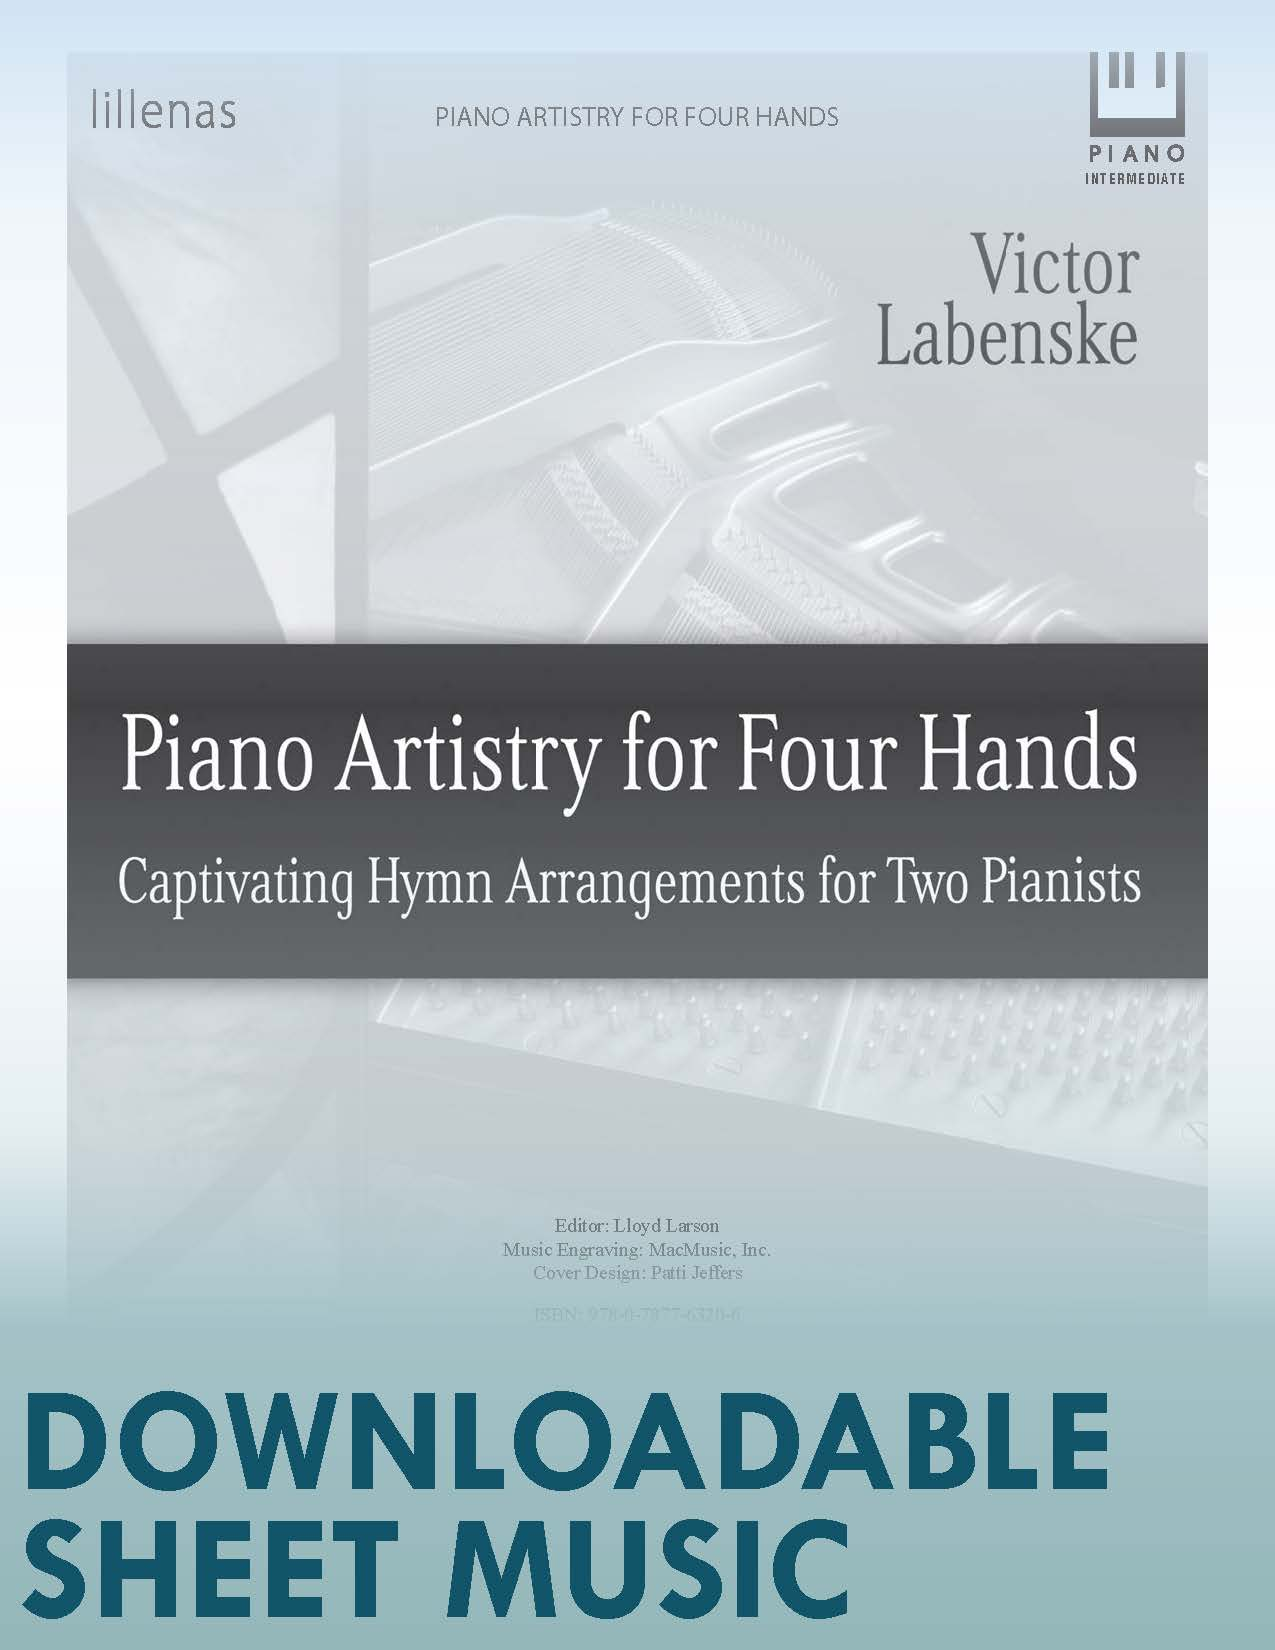 Piano Artistry for Four Hands - Digital Download